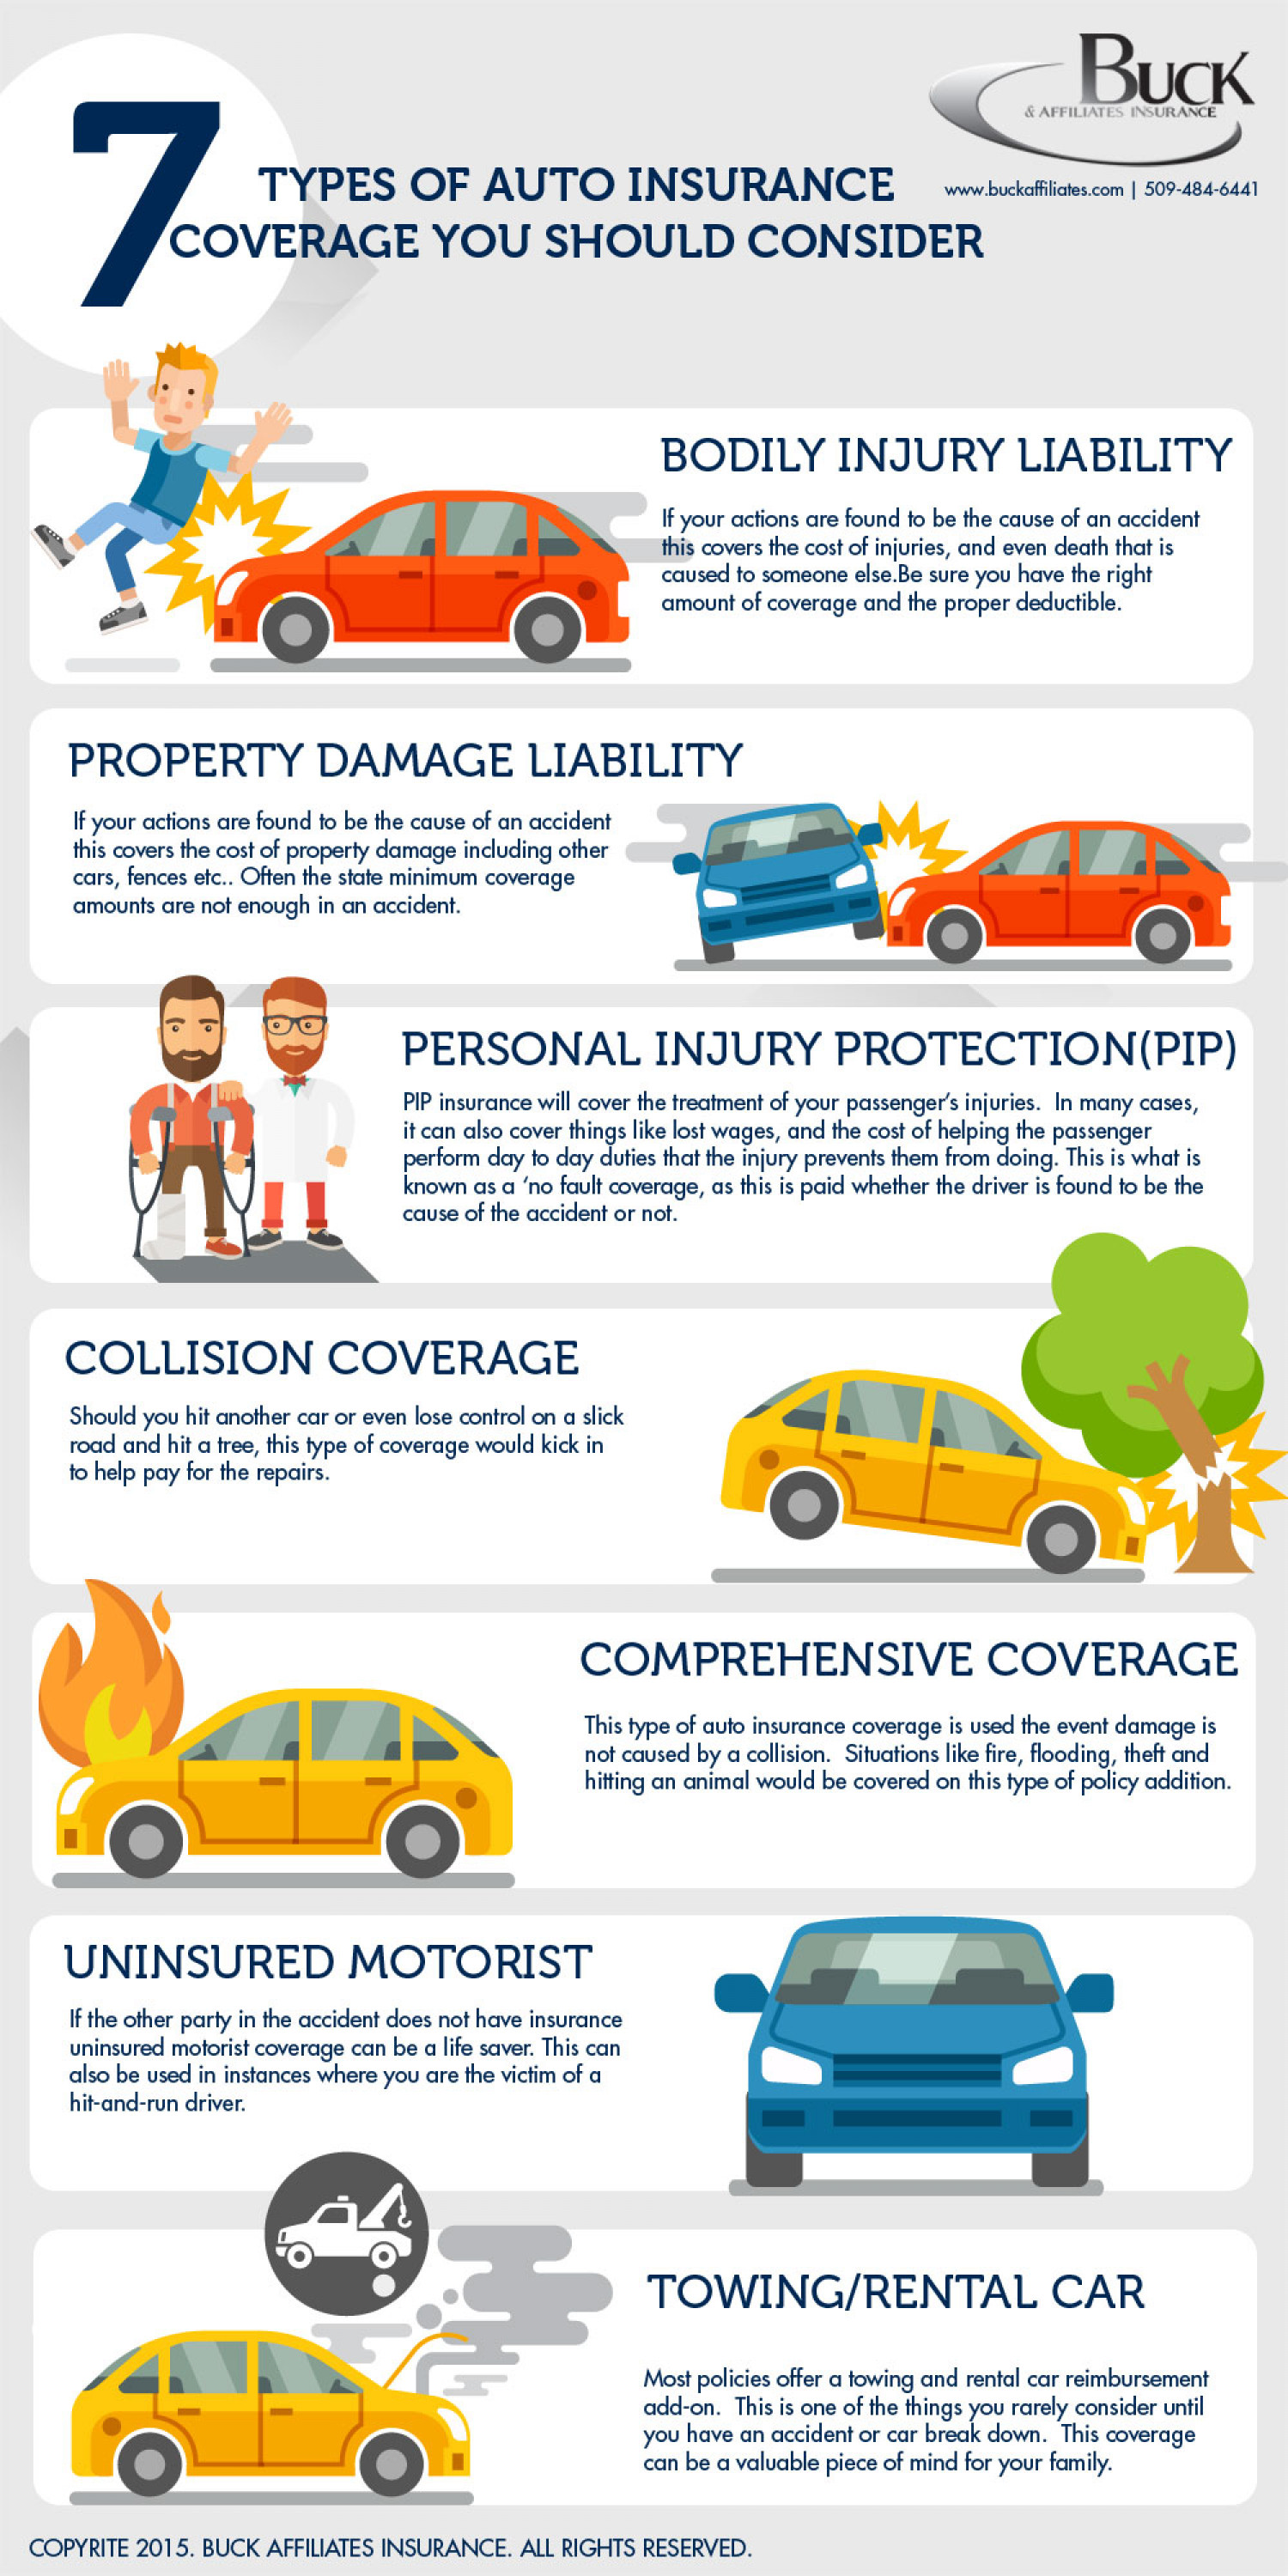 Car Insurance For Rental Cars In Canada